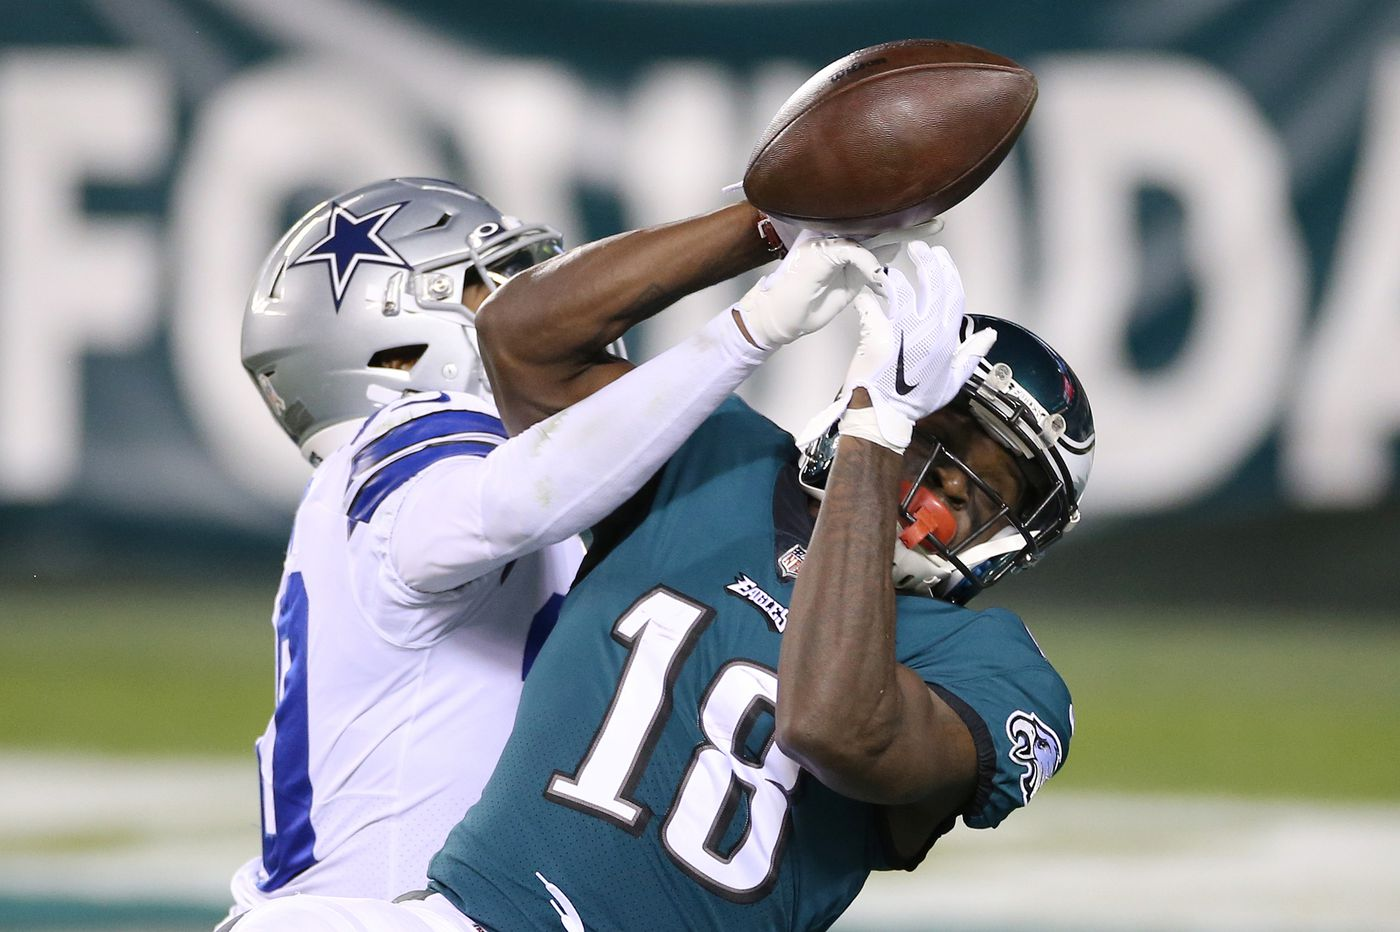 Yes, the Eagles should've taken Justin Jefferson, but Jalen Reagor still is a good player with a tremendous upside